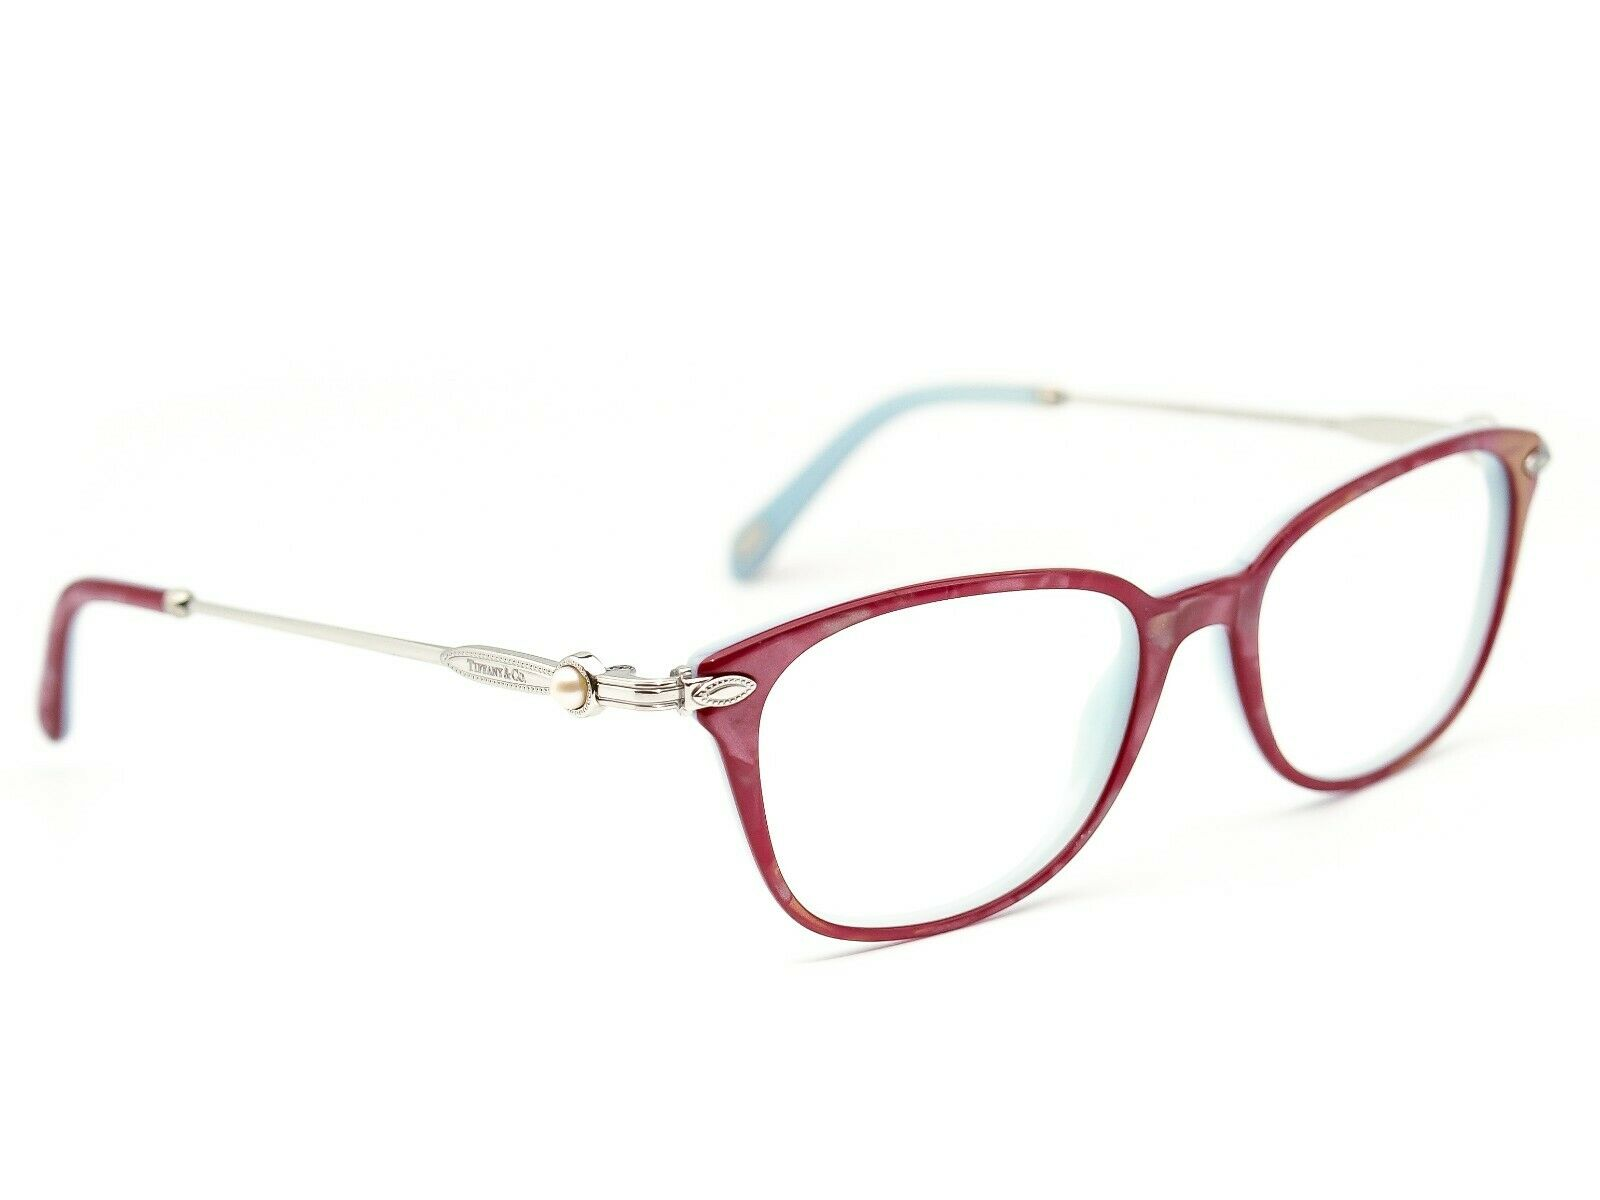 Tiffany & Co. TF 2096-H 8184 Eyeglasses